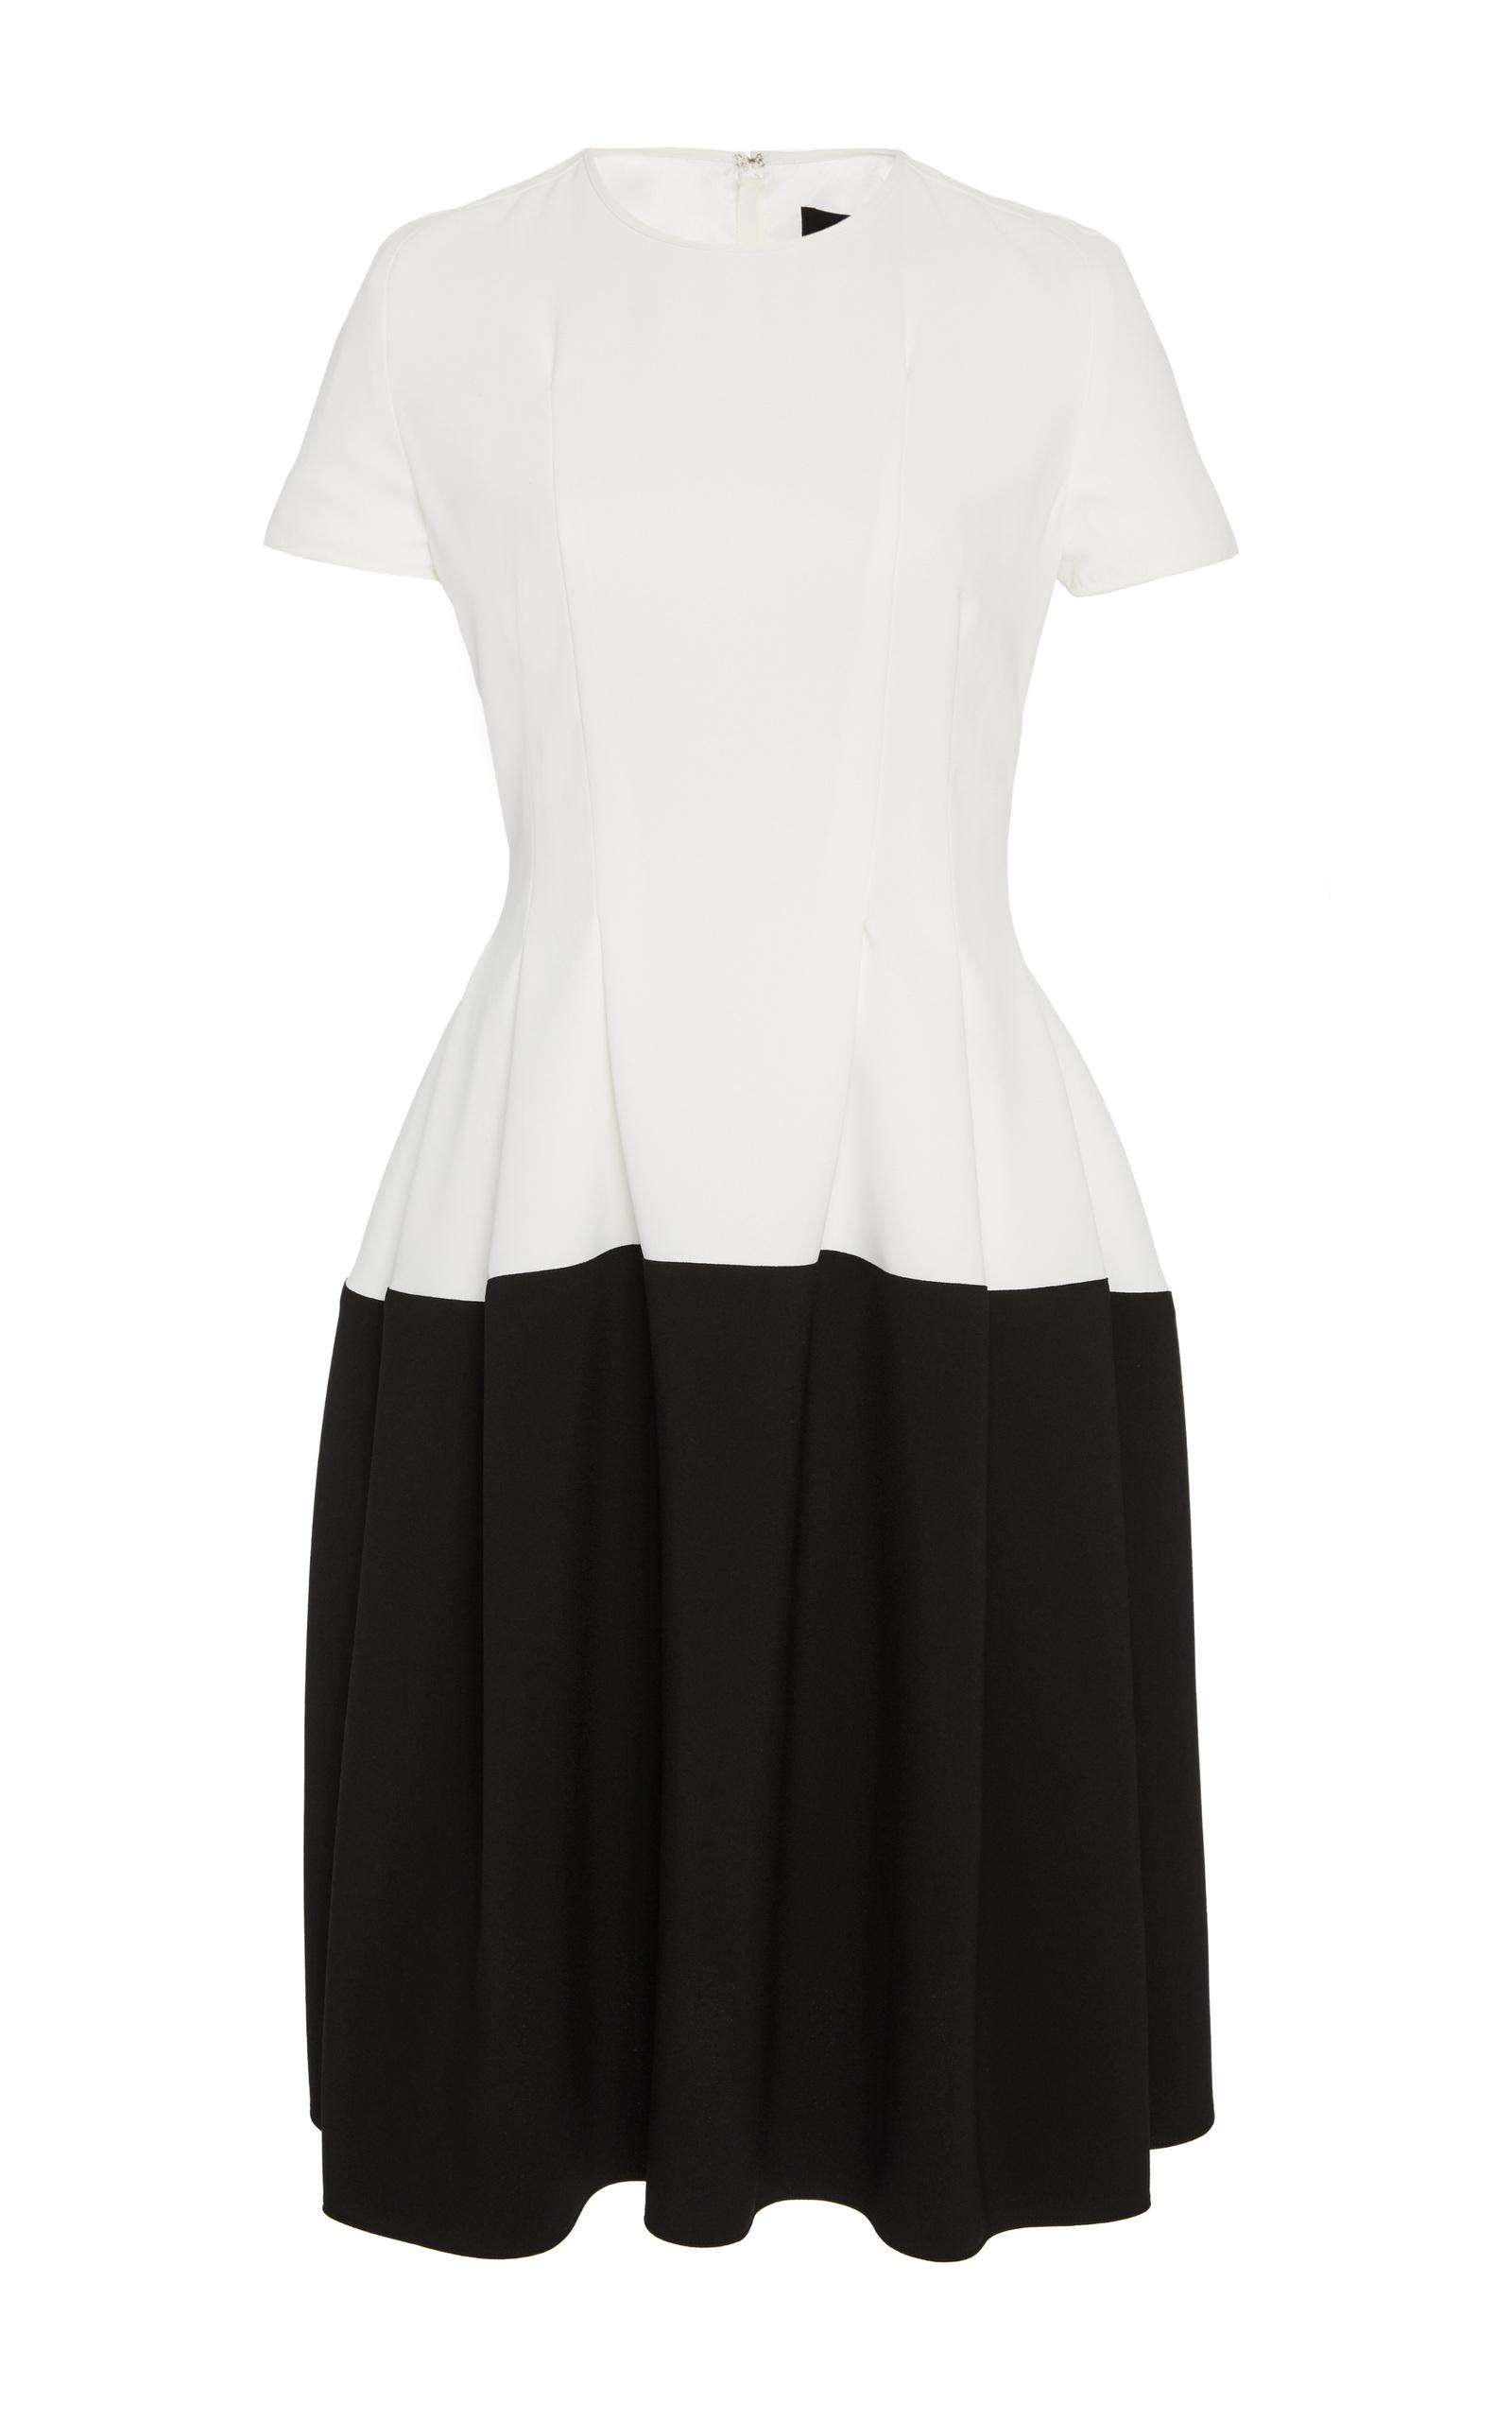 Paule Ka Short Sleeve A Line Dress In Black%2fwhite